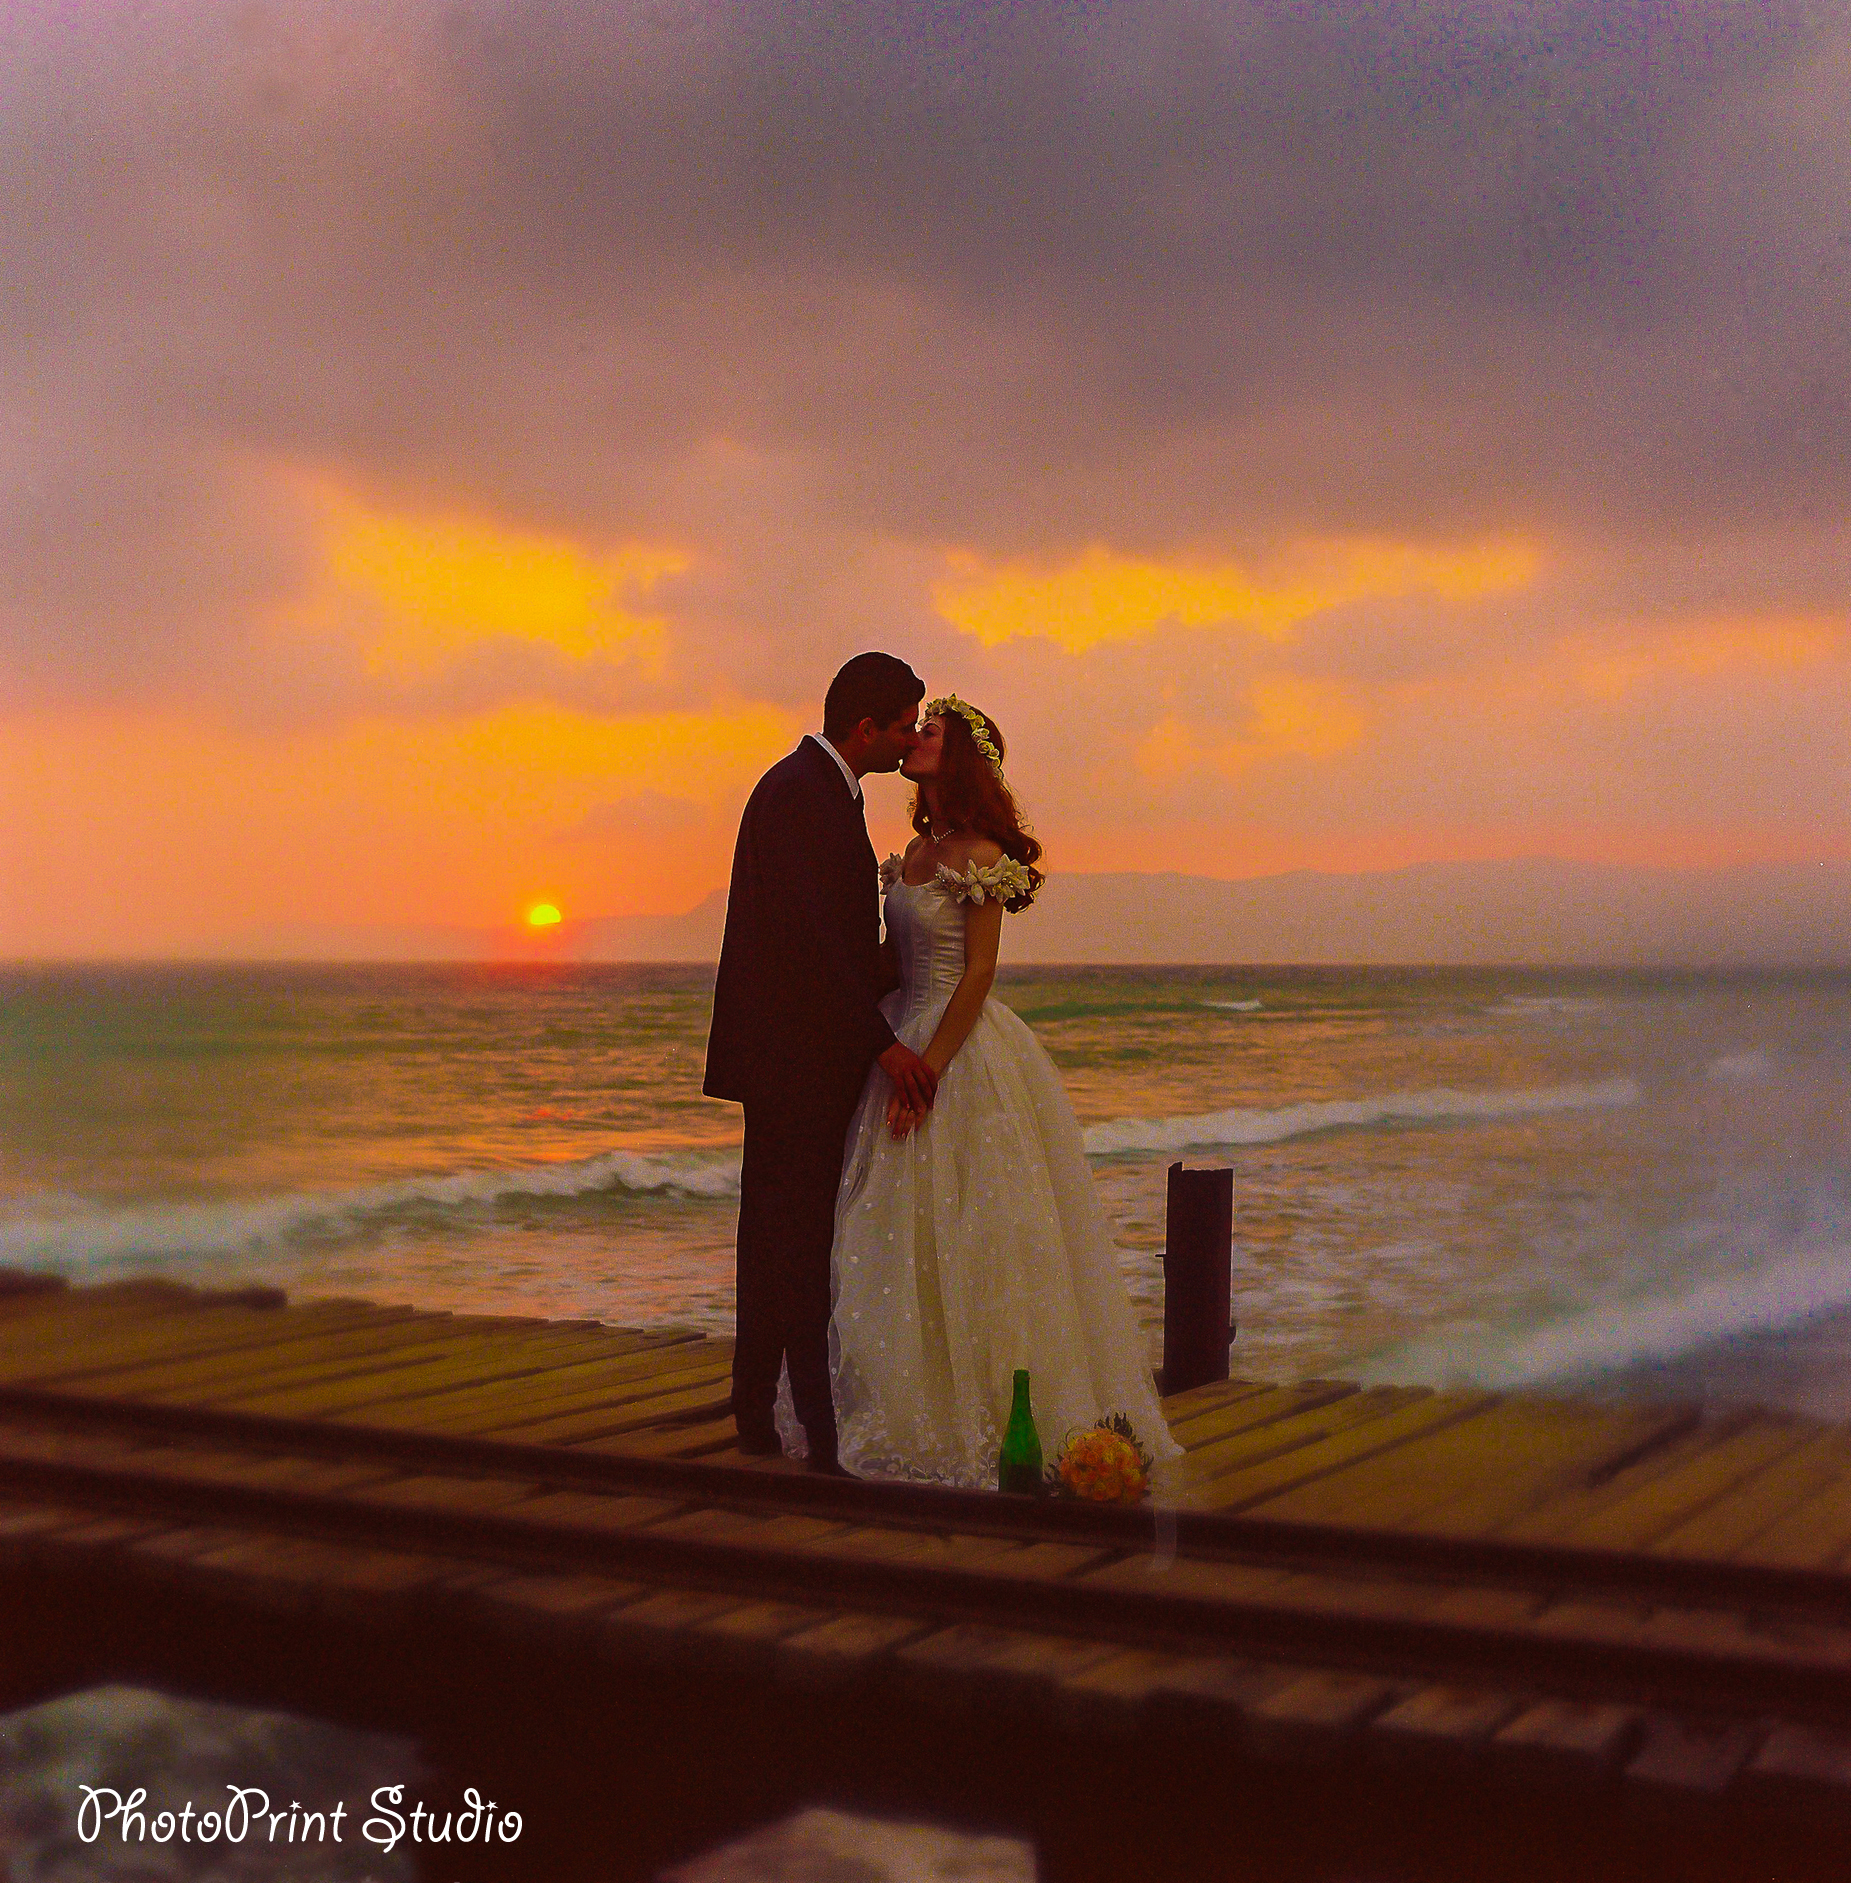 cyprus wedding photo